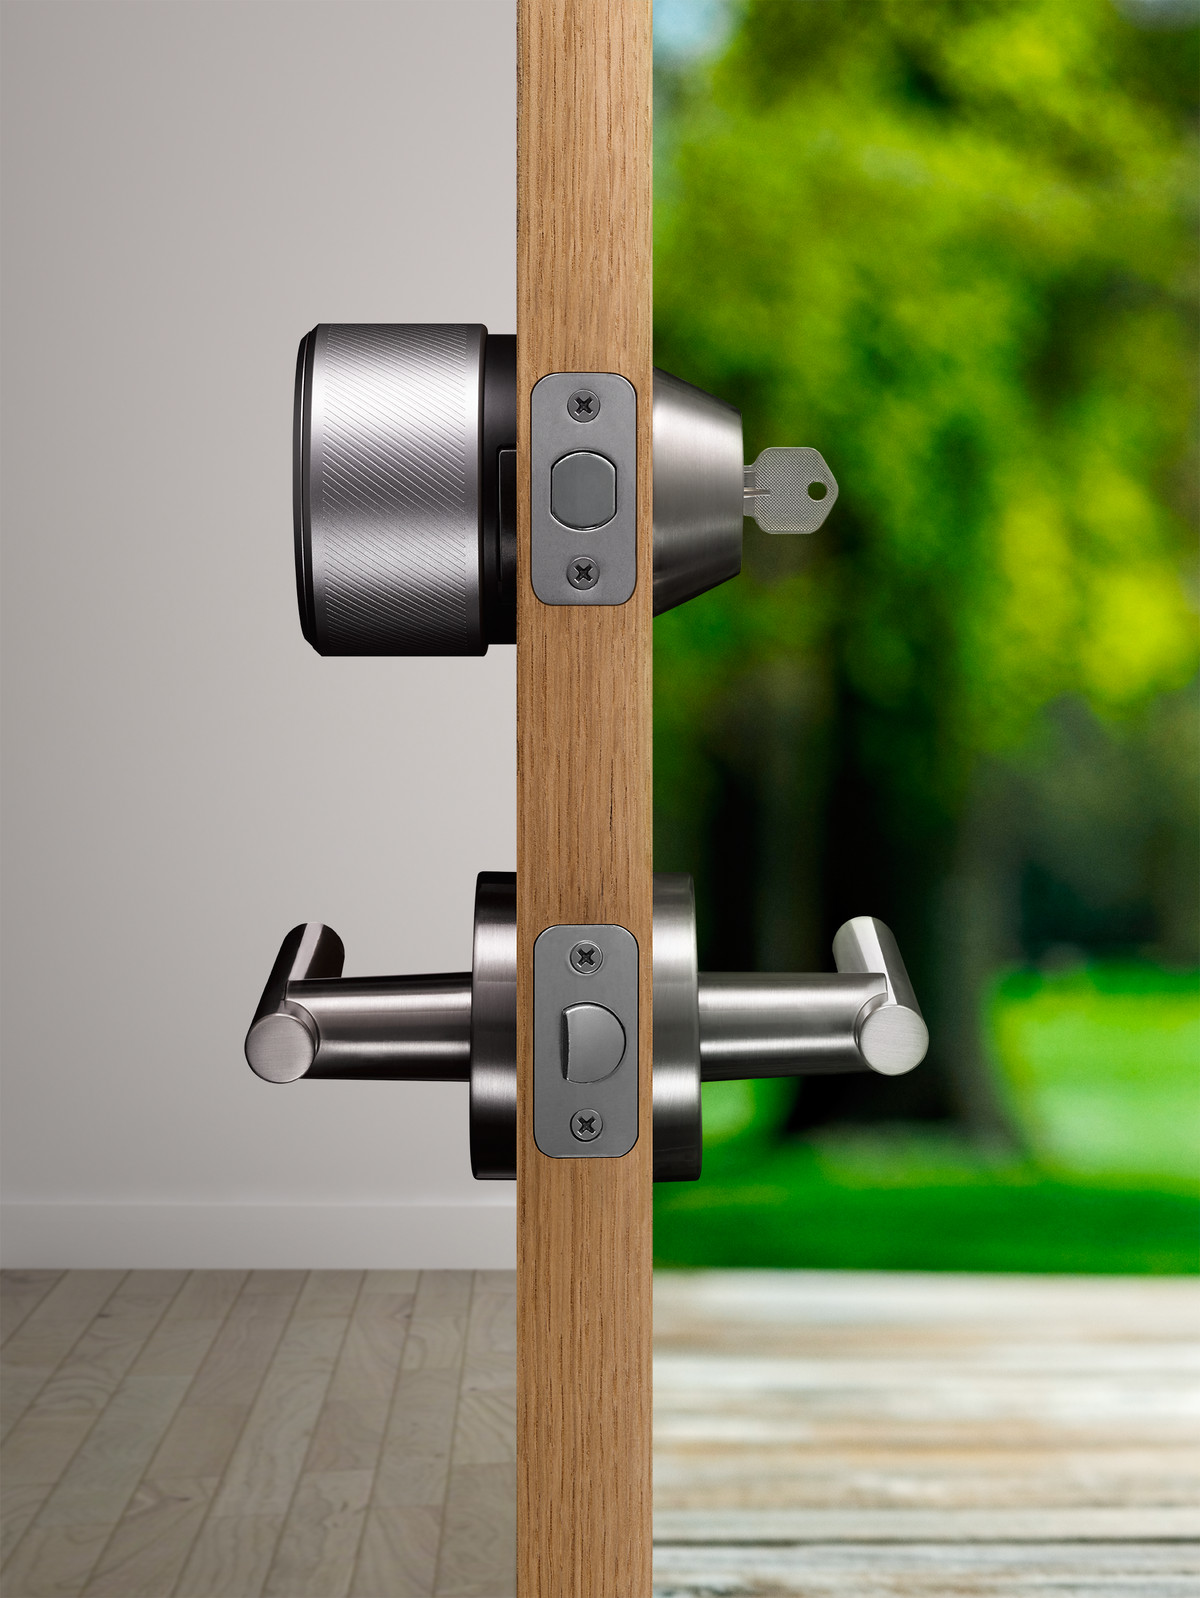 The August Smart Lock only goes on the inside of the door.